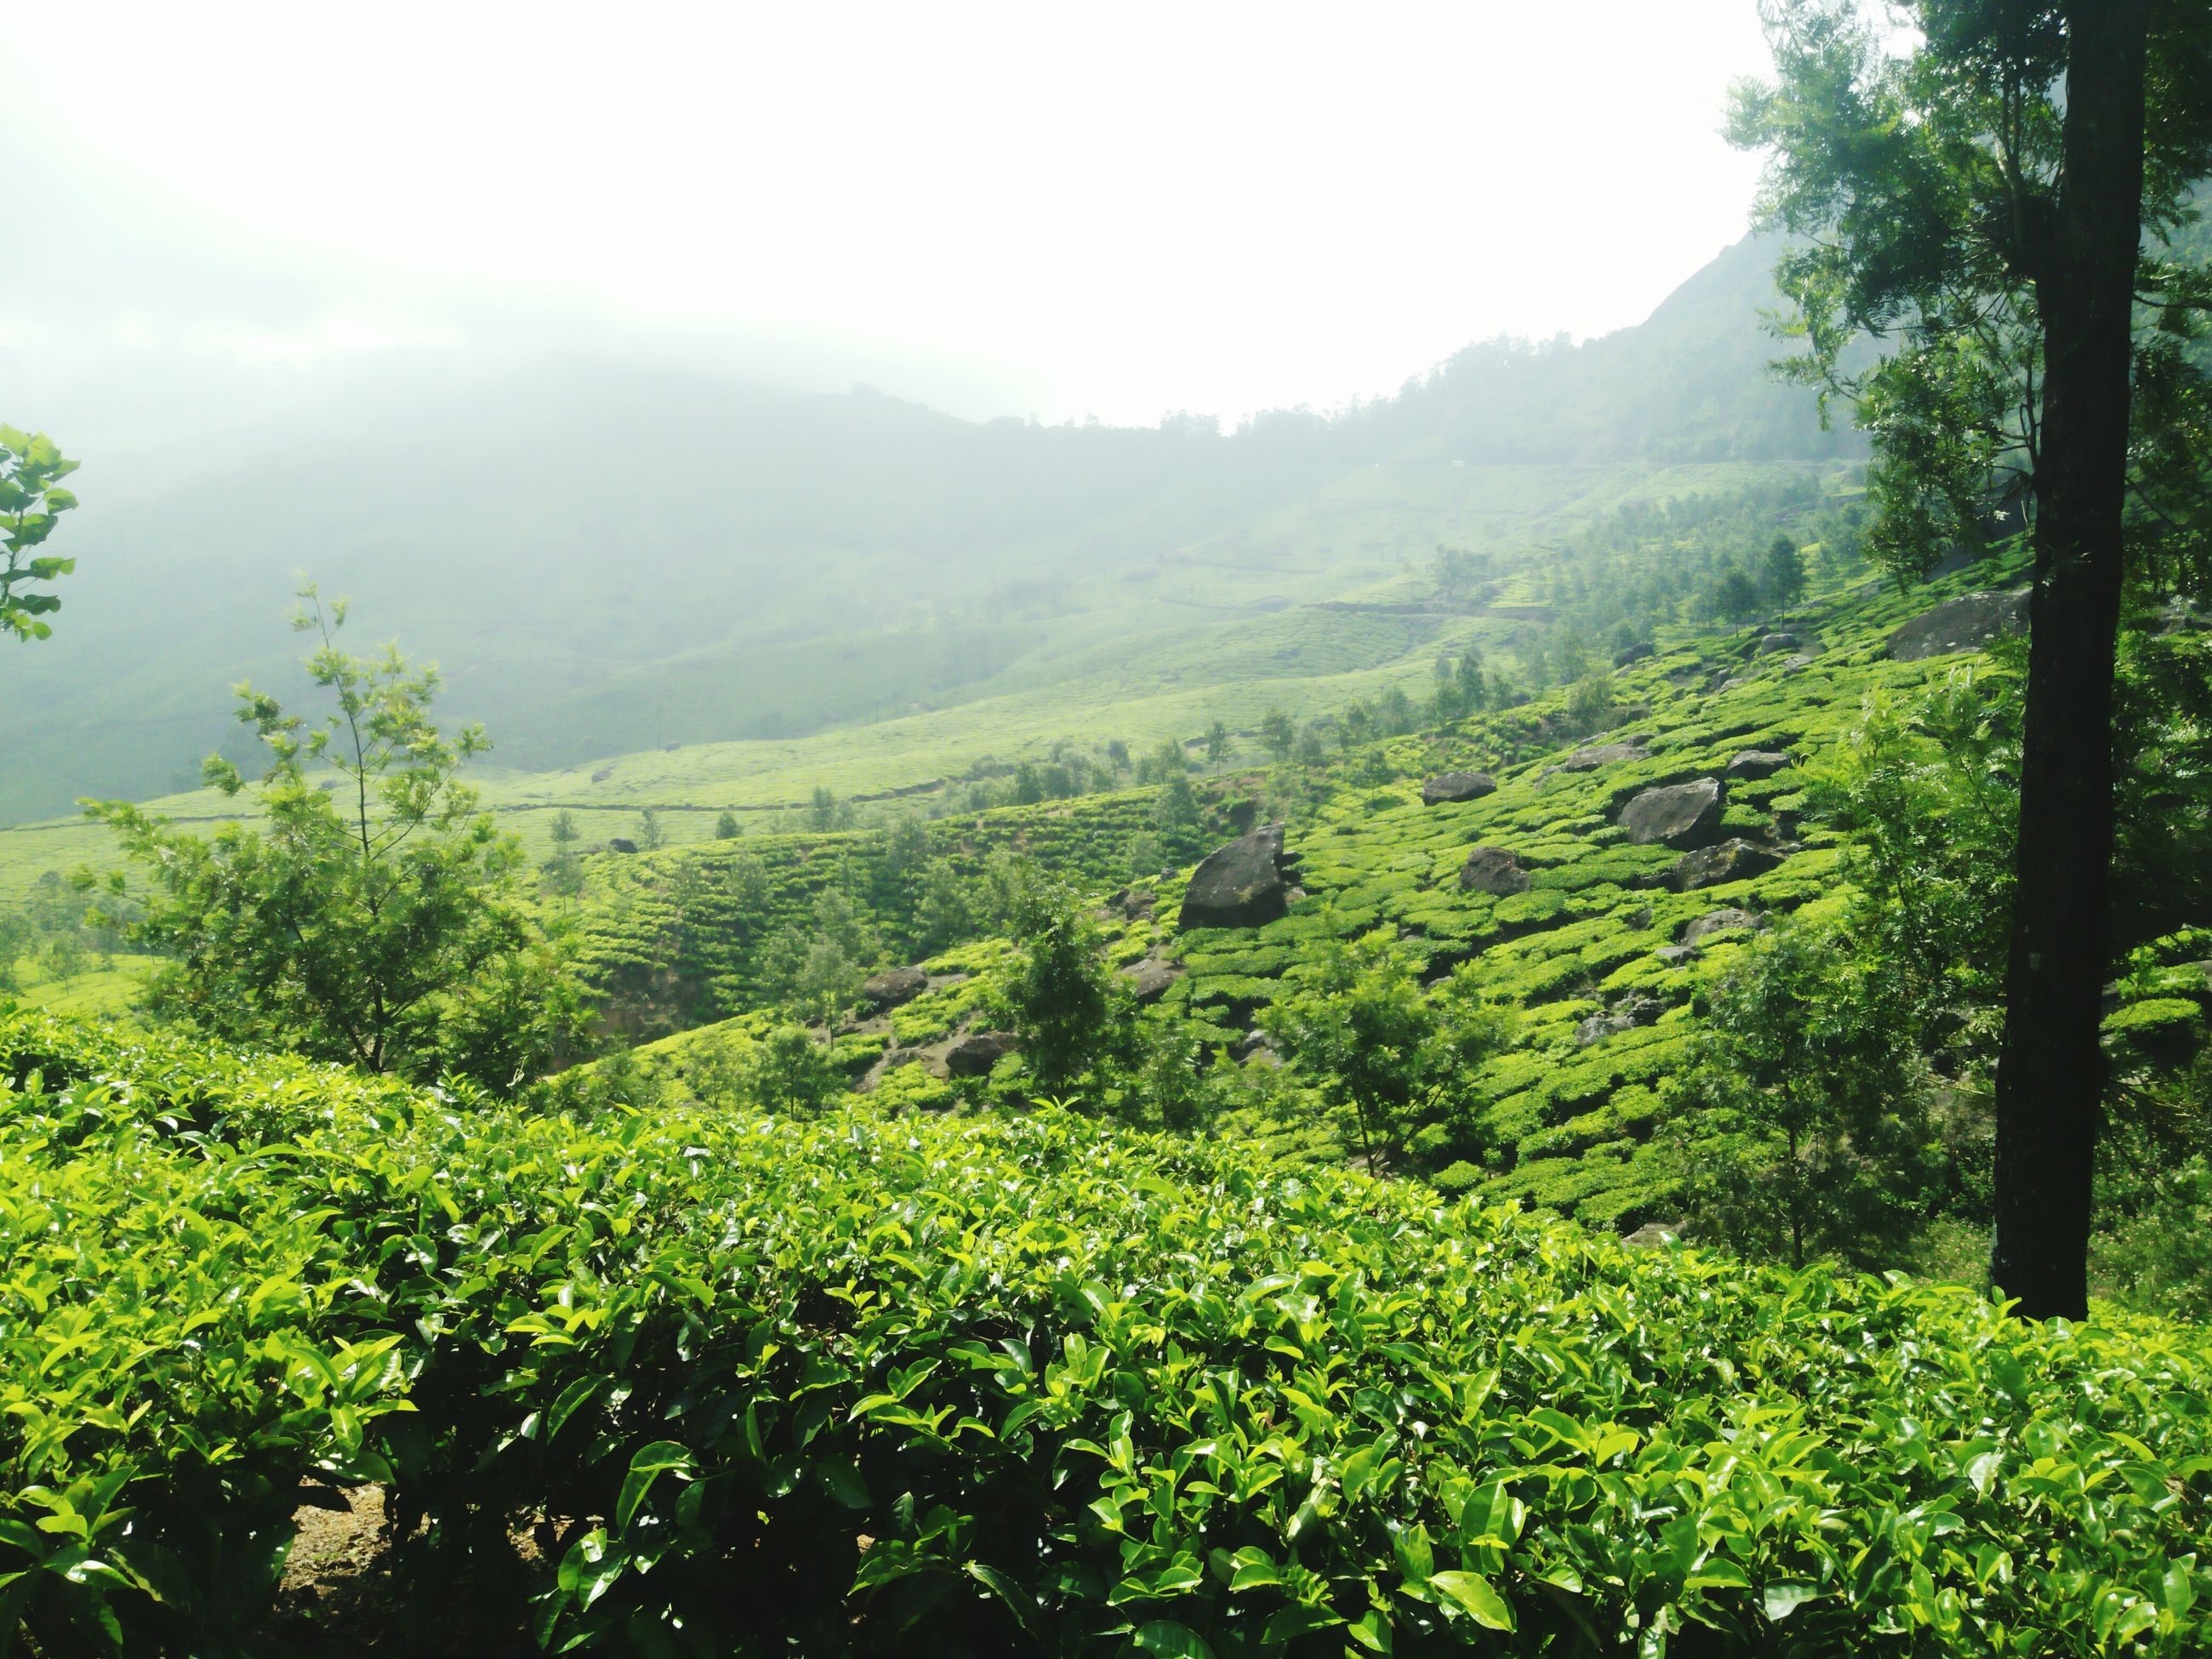 growth, tree, nature, beauty in nature, landscape, green color, agriculture, scenics, tranquility, tranquil scene, no people, outdoors, day, sky, field, rural scene, mountain, tea crop, freshness